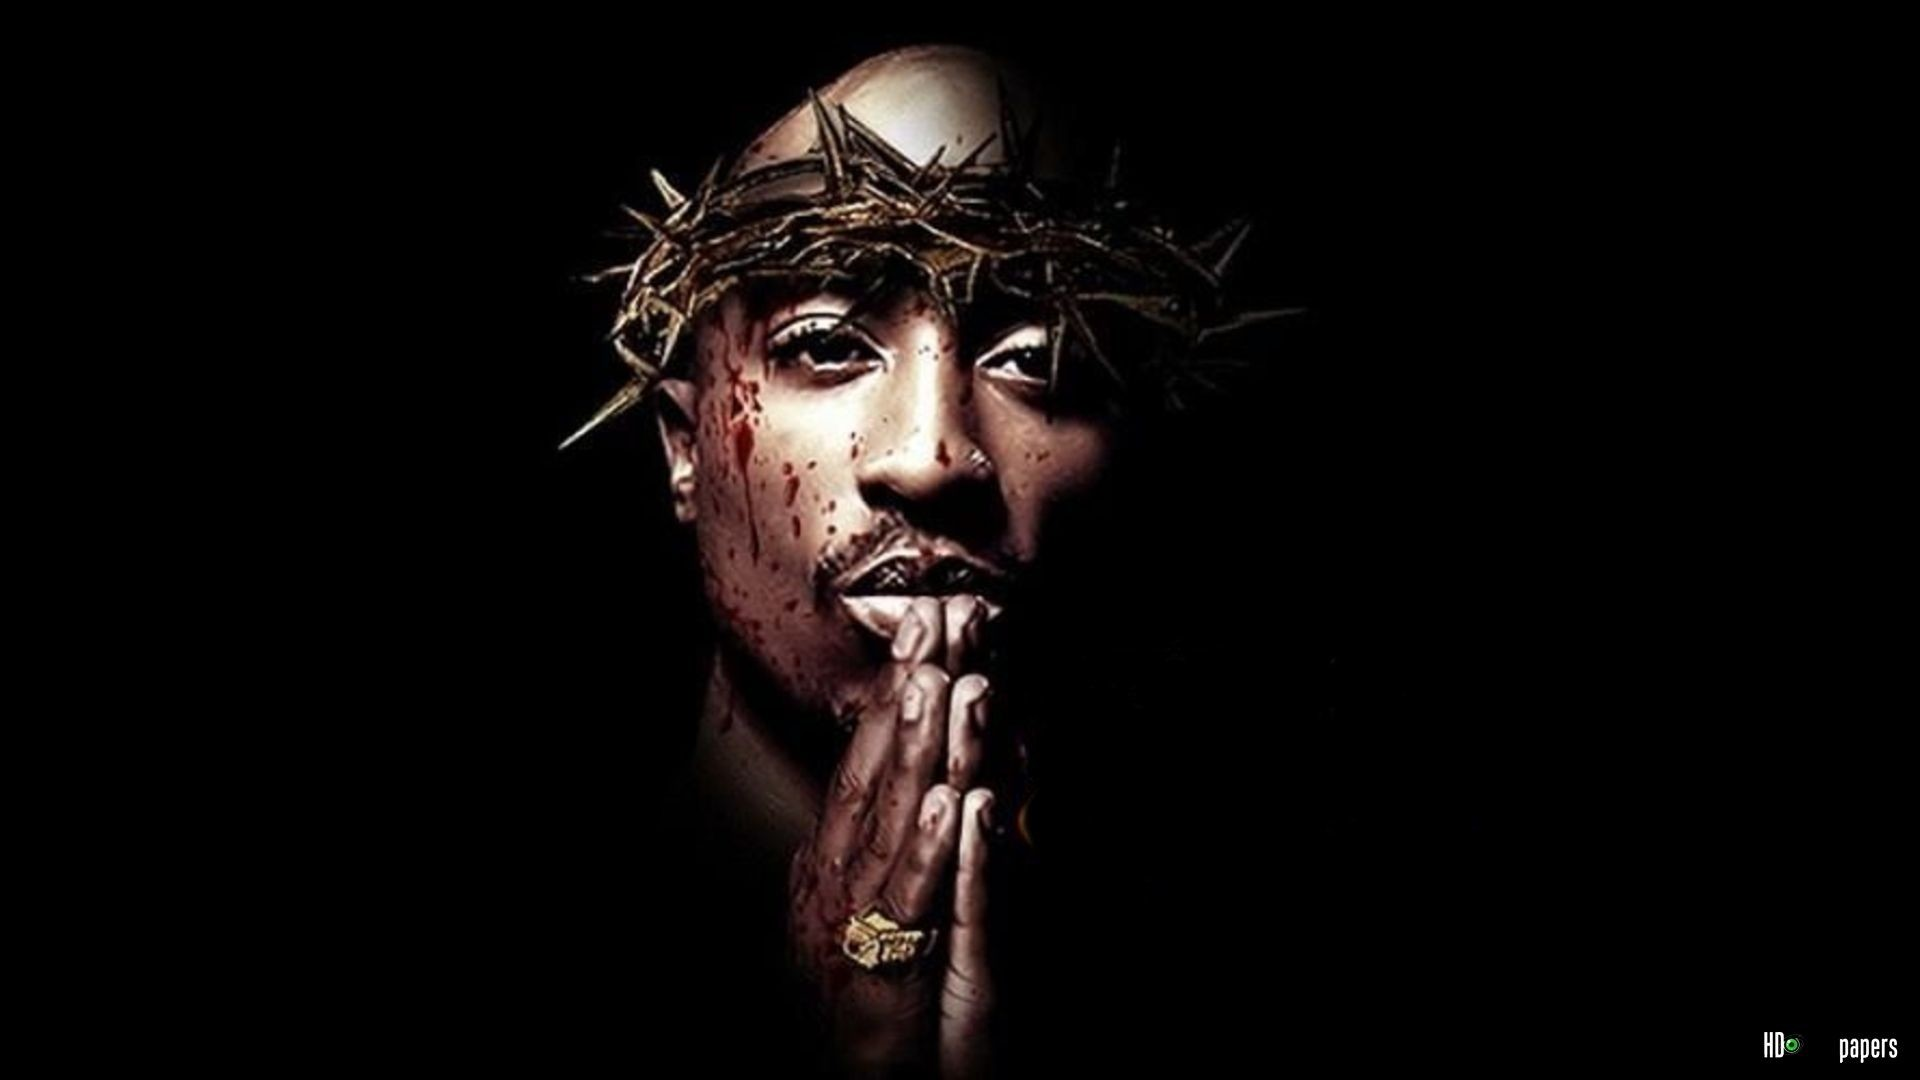 2Pac Wallpaper HD 78 images